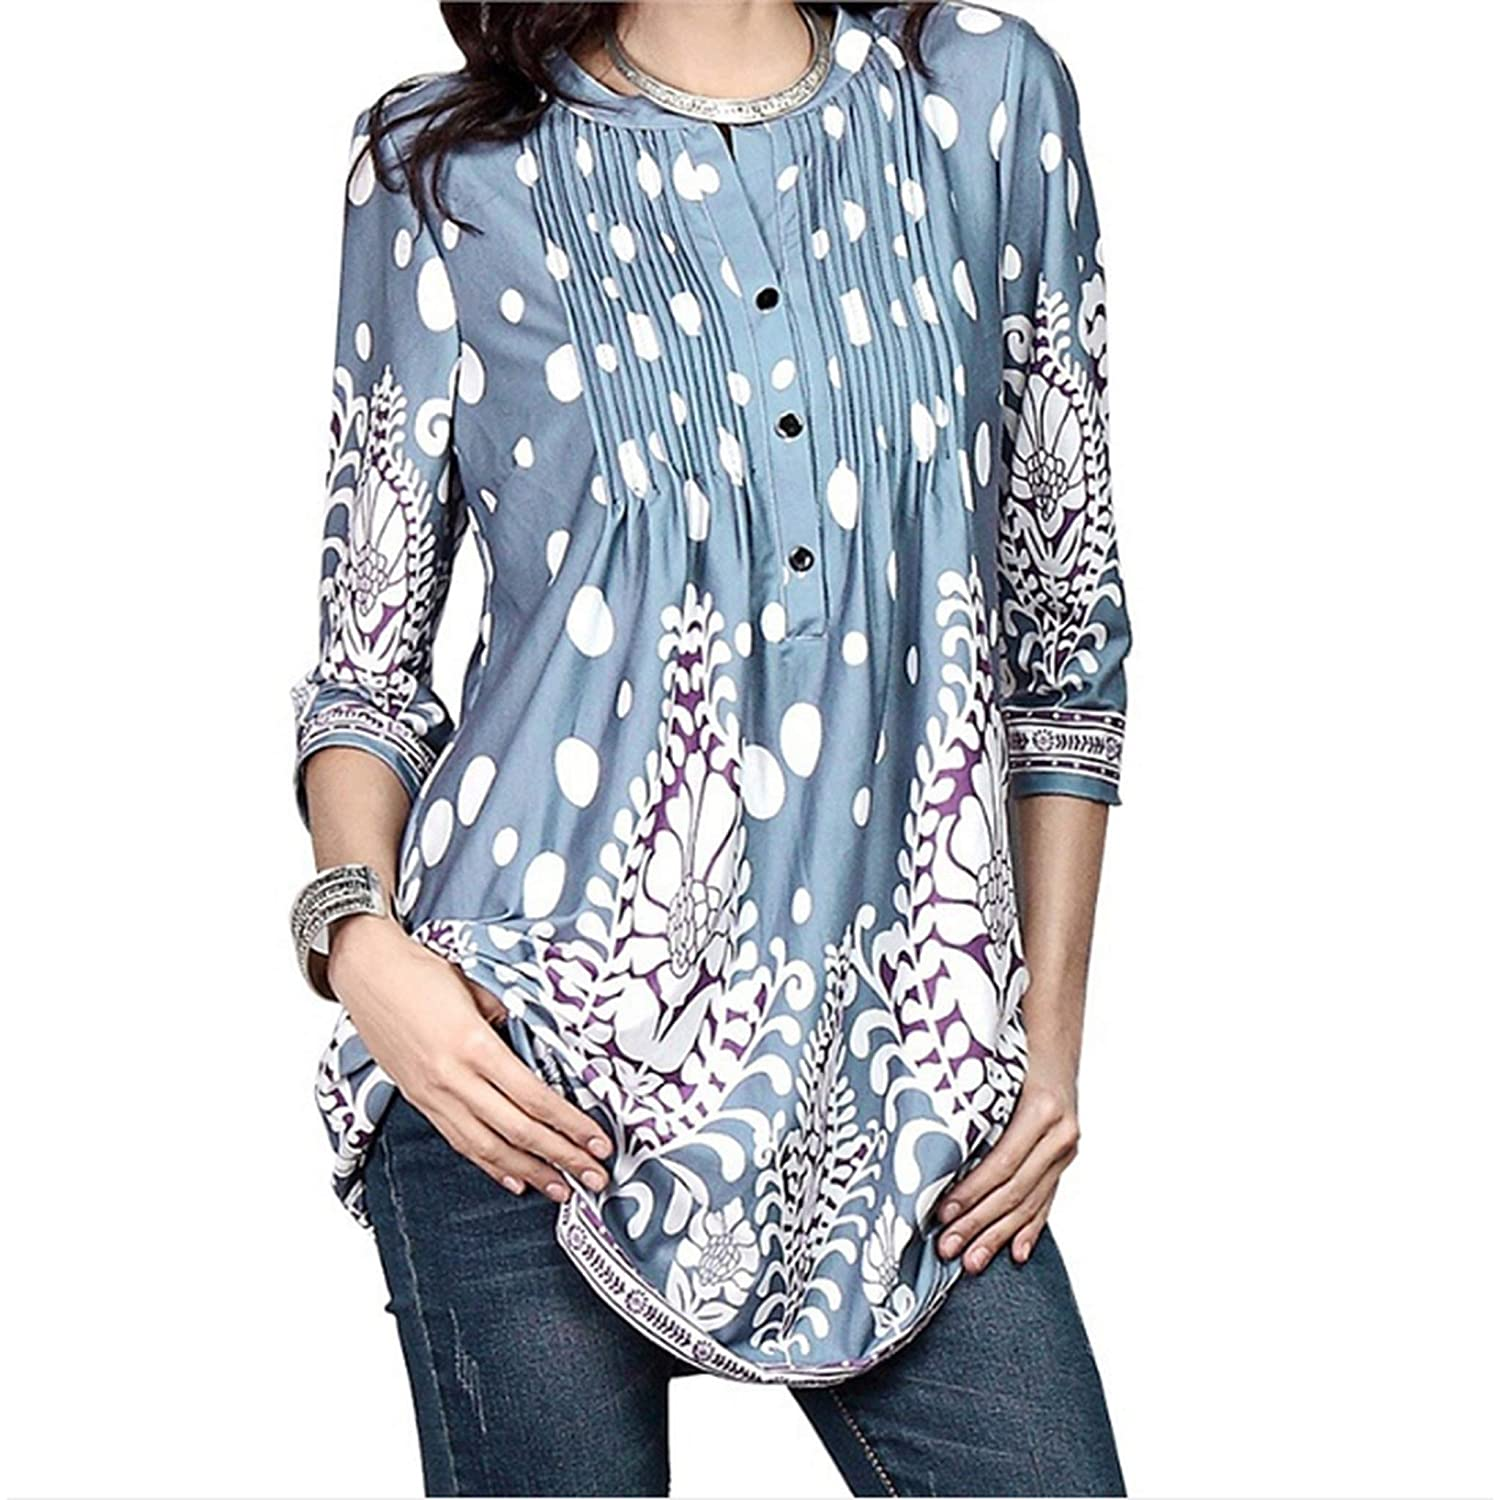 ES-UK Womens Floral Print 3/4 Long Sleeve Tunic Top/Blouse